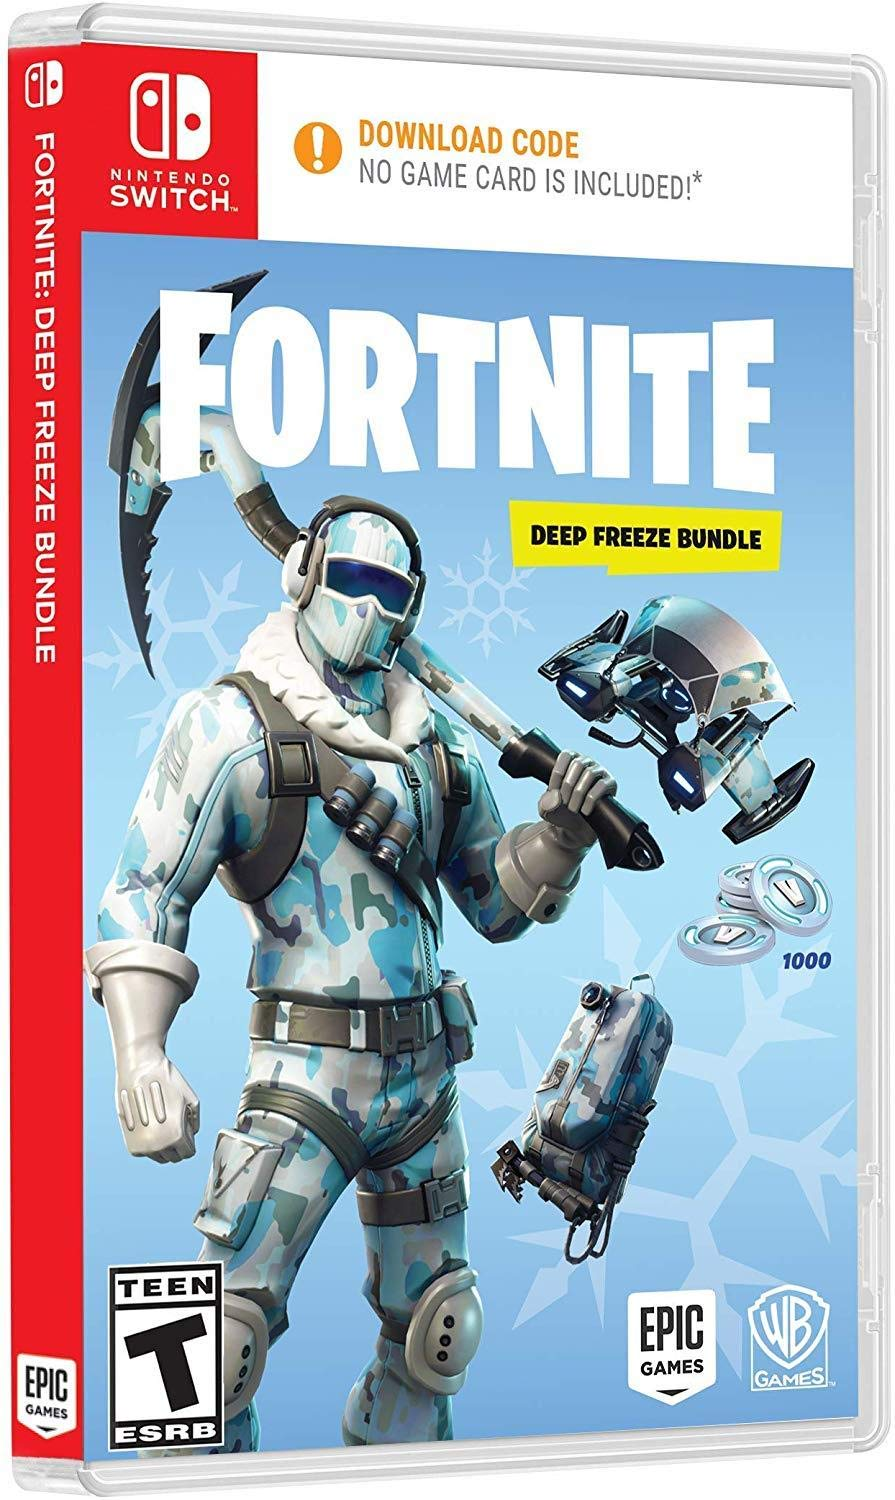 Fortnite Deep Frost Bundle for Nintendo Switch [USA]: Amazon.es: Whv Games: Cine y Series TV